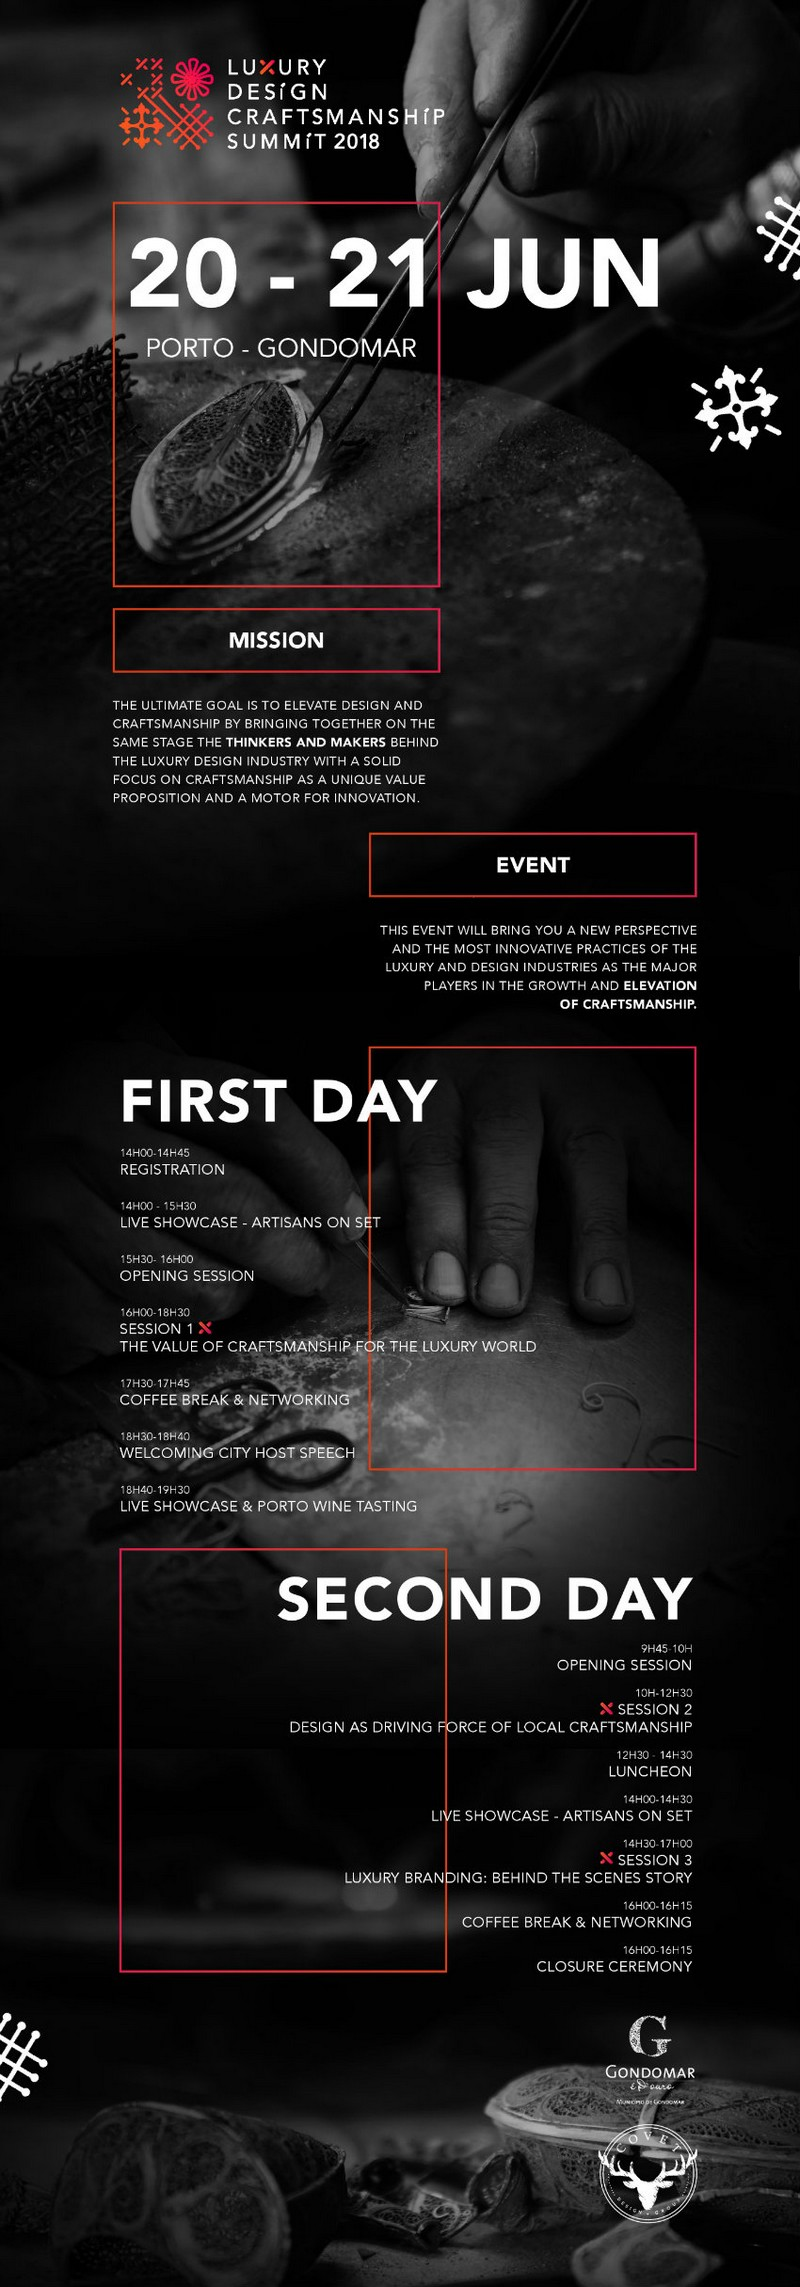 luxury design Luxury Design Discover the Luxury Design & Craftsmanship Summit 2018 8 summit infographic 001